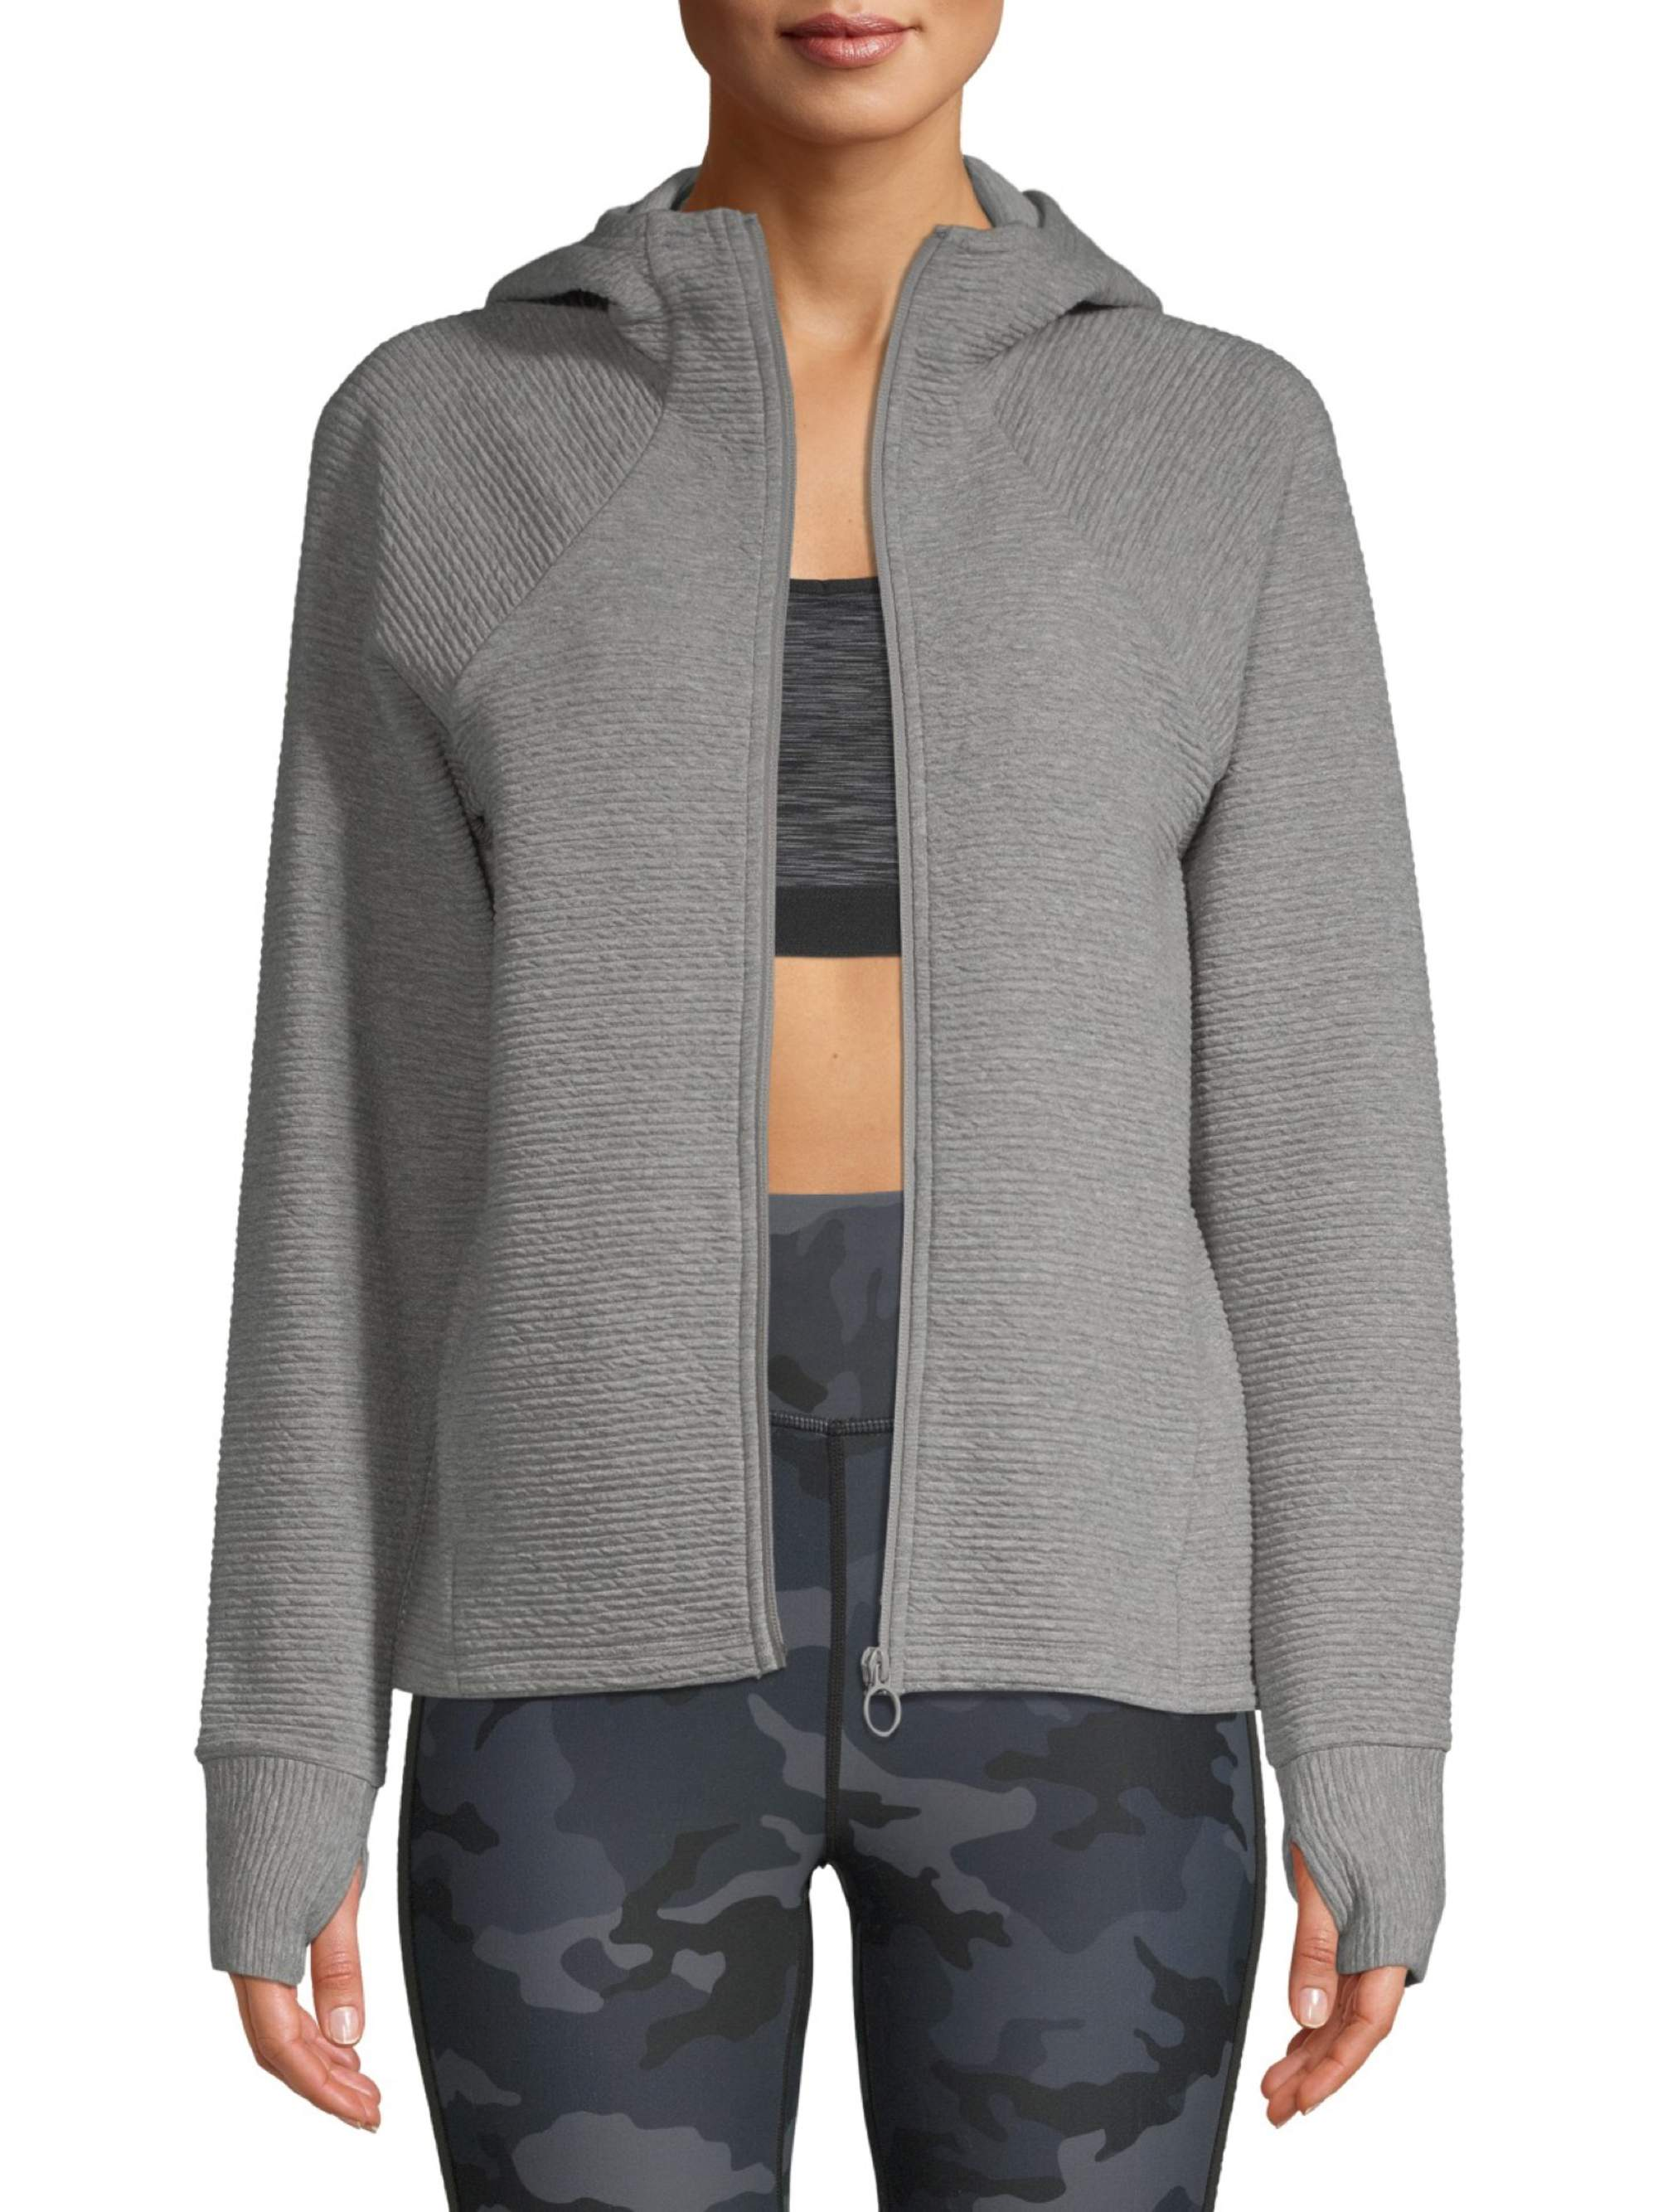 Athletic Works Women/'s Active Commuter Jacket with Hood